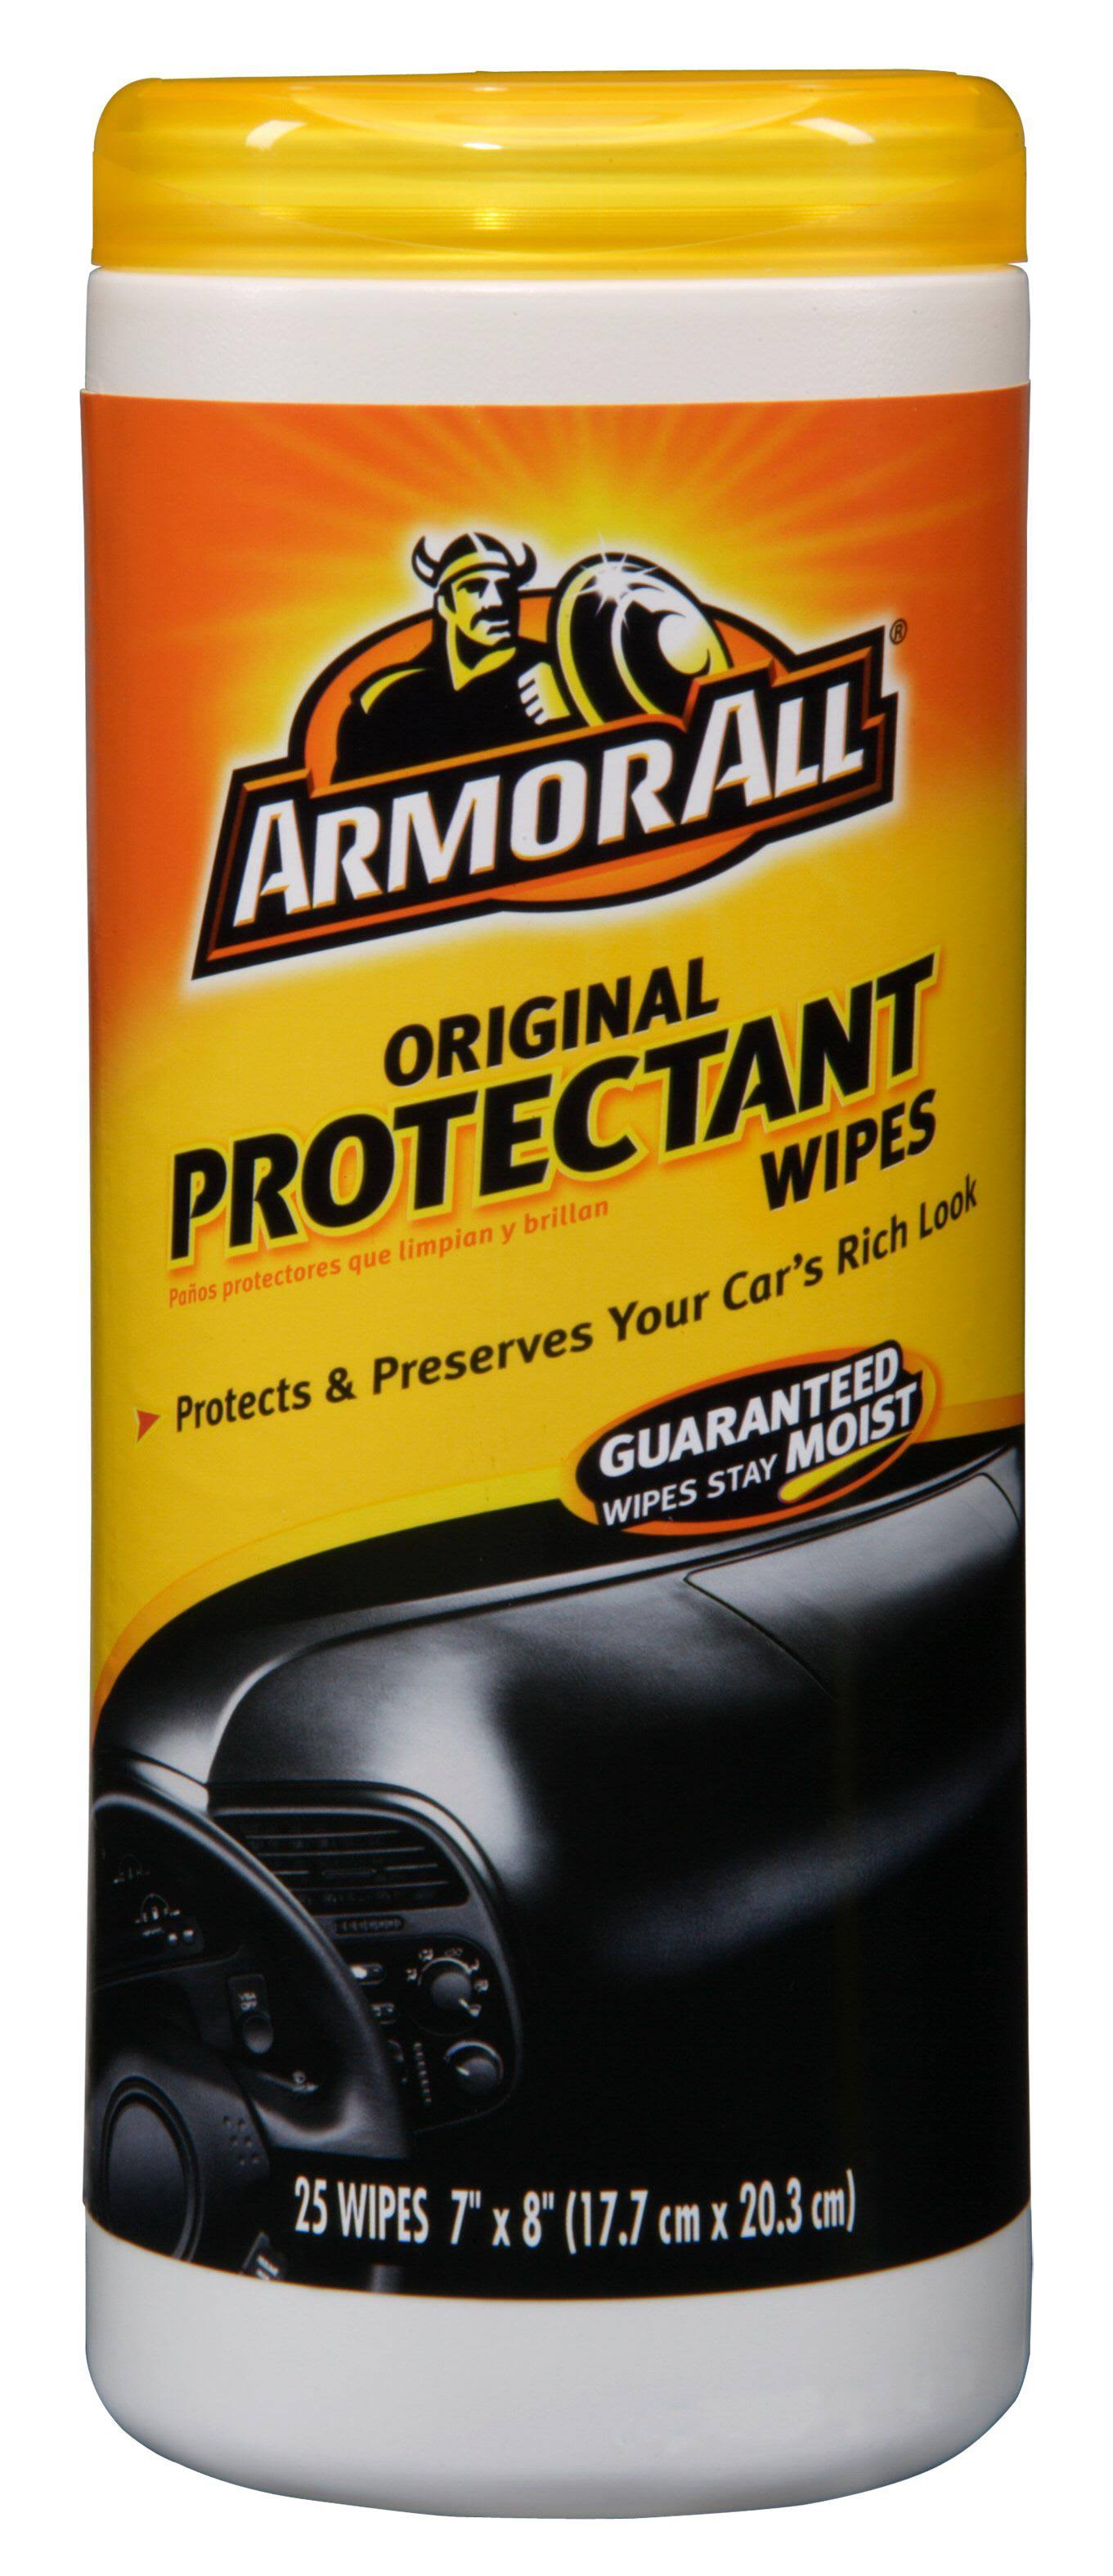 Armor All Original Protectant Wipes - 25 Wipes